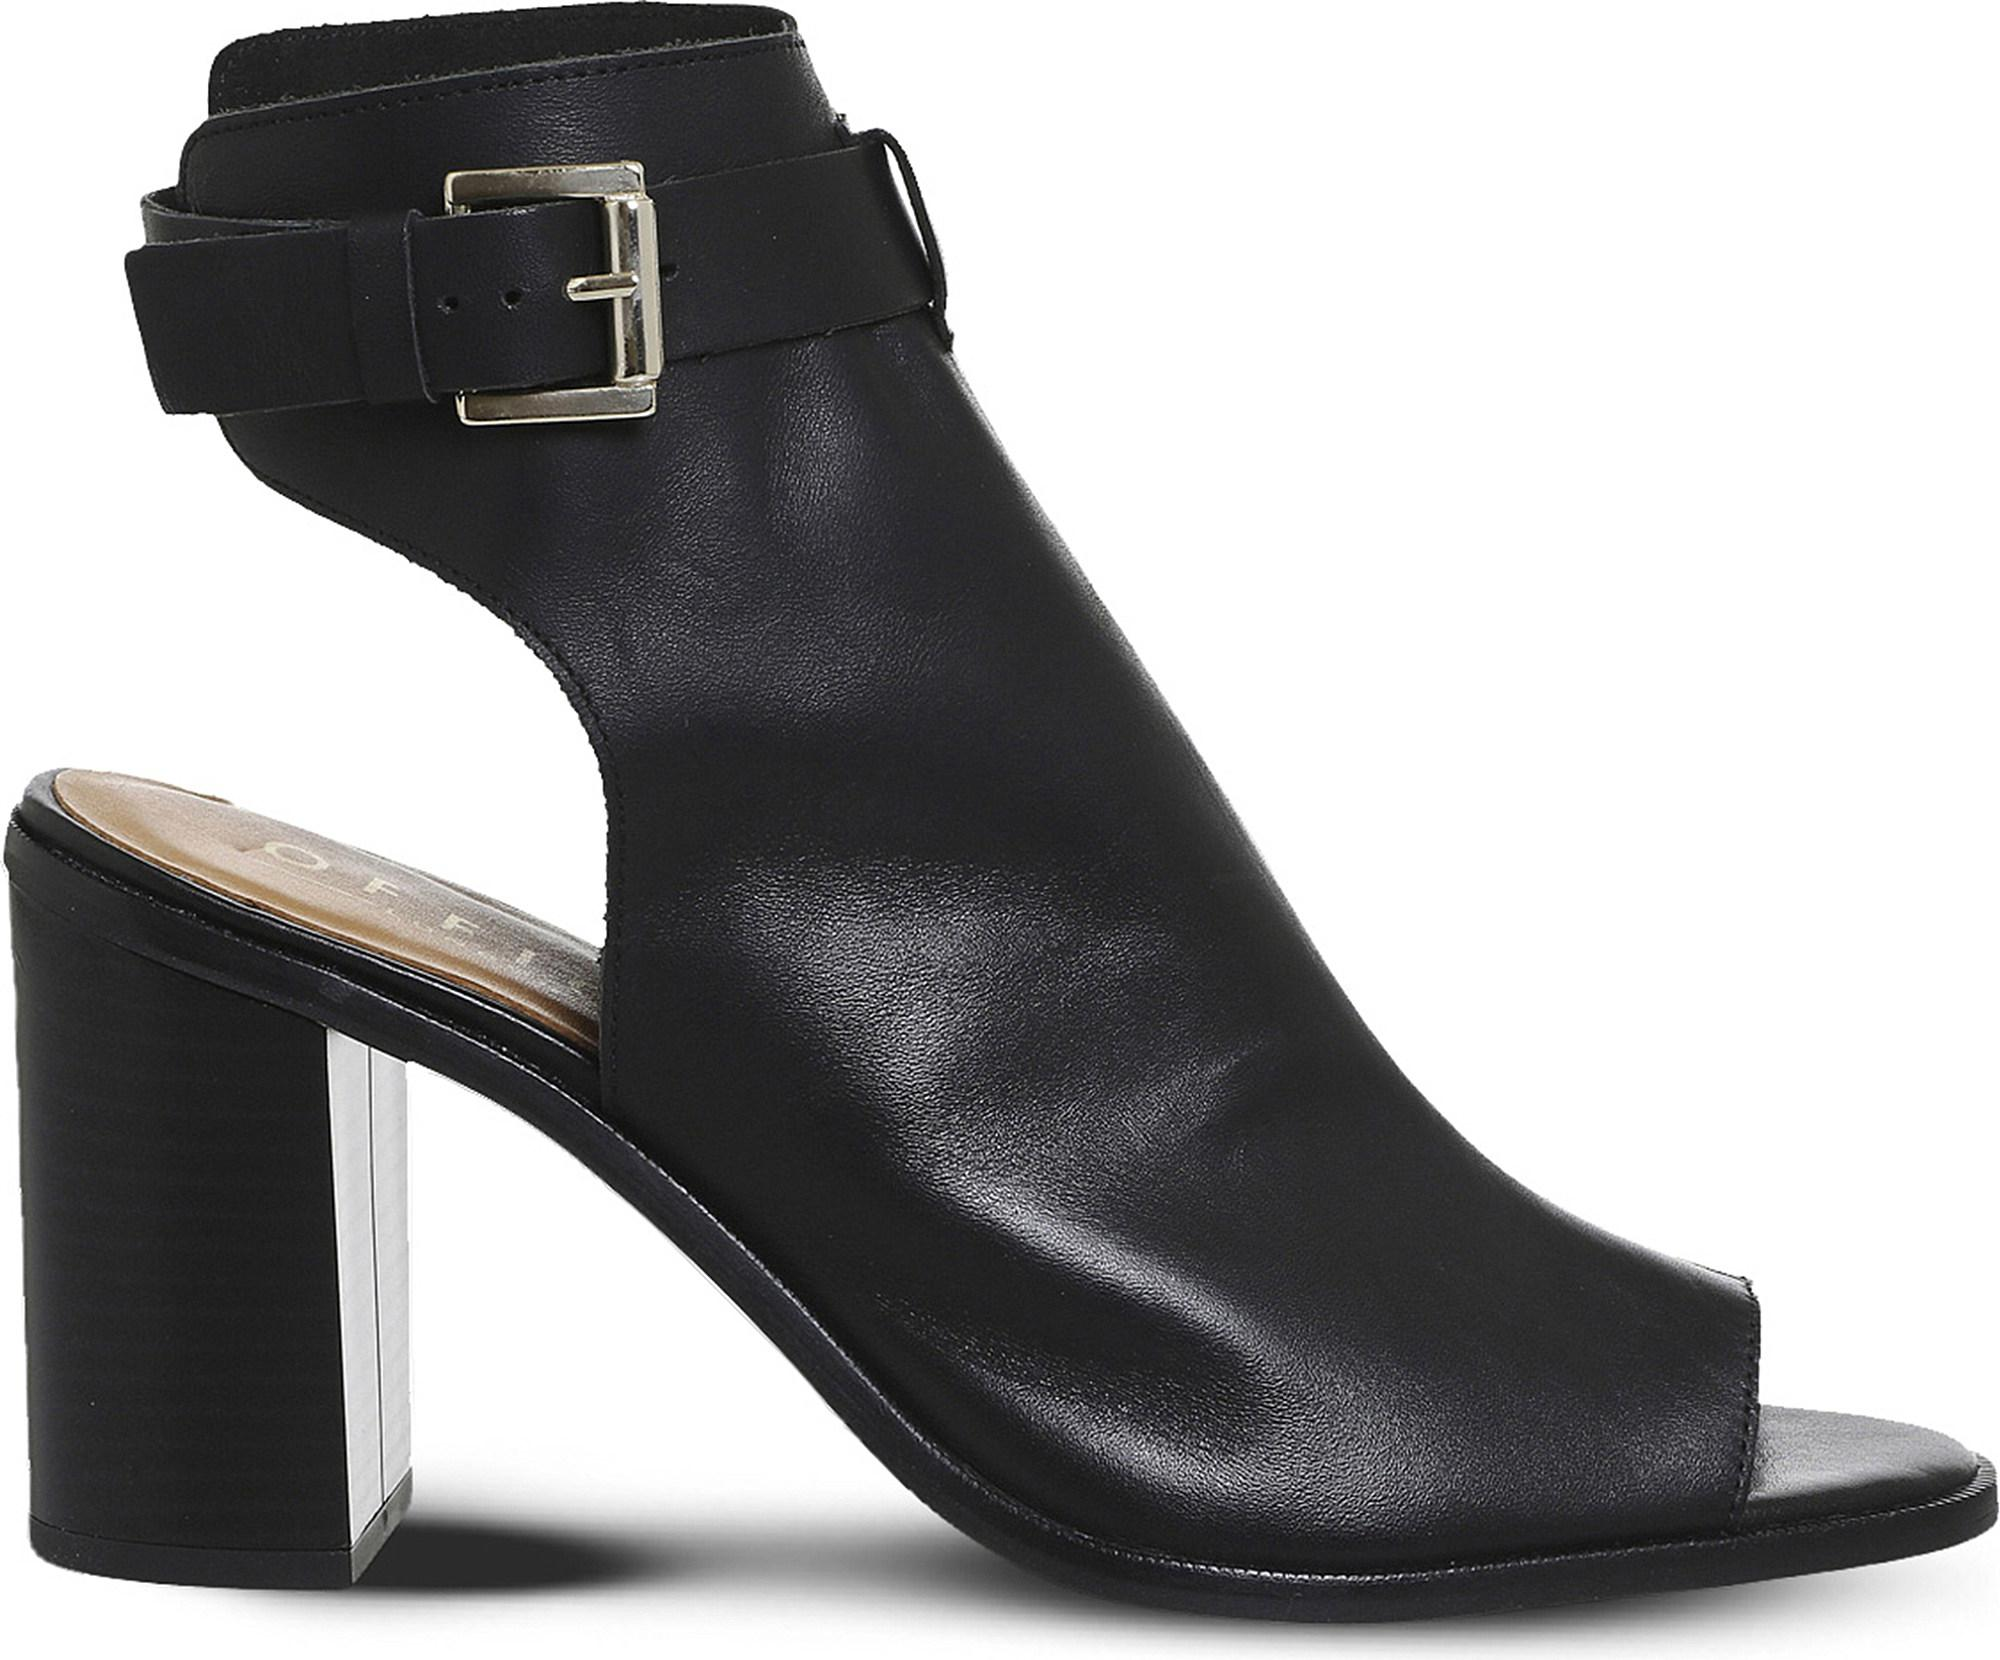 Black leather OFFICE Adele cutout leather ankle boots